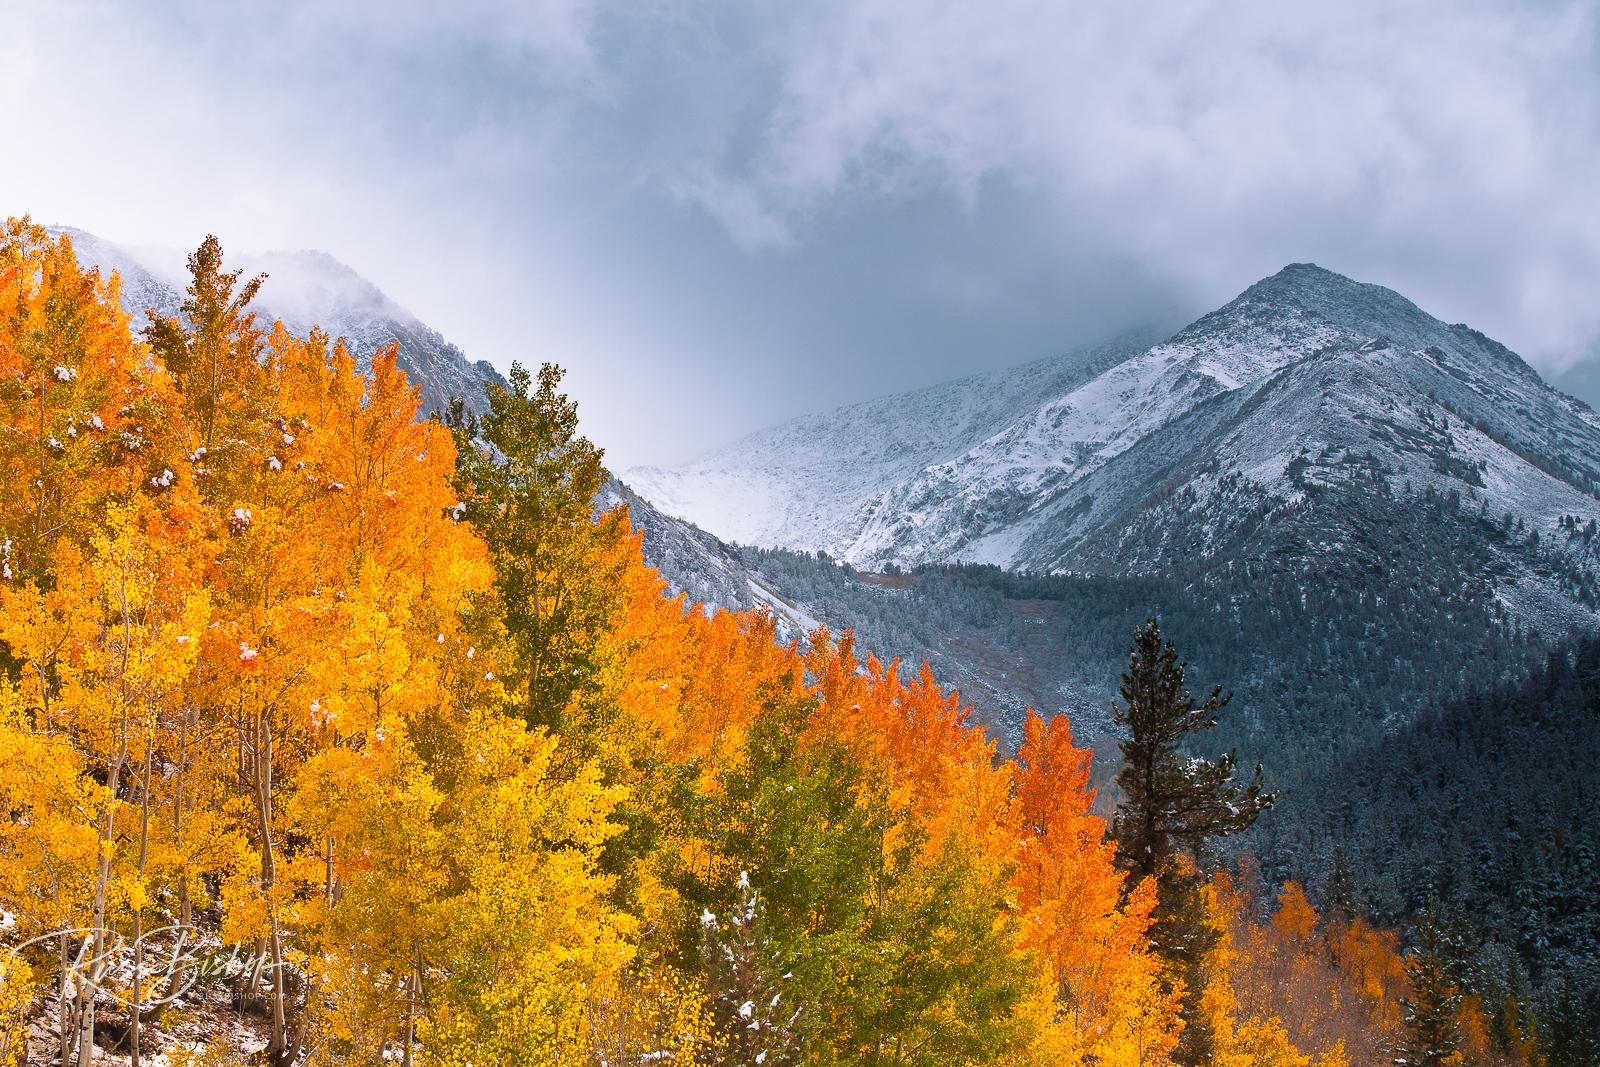 Fall color and early snow at North Lake, Inyo National Forest, Sierra Nevada Mountains, California